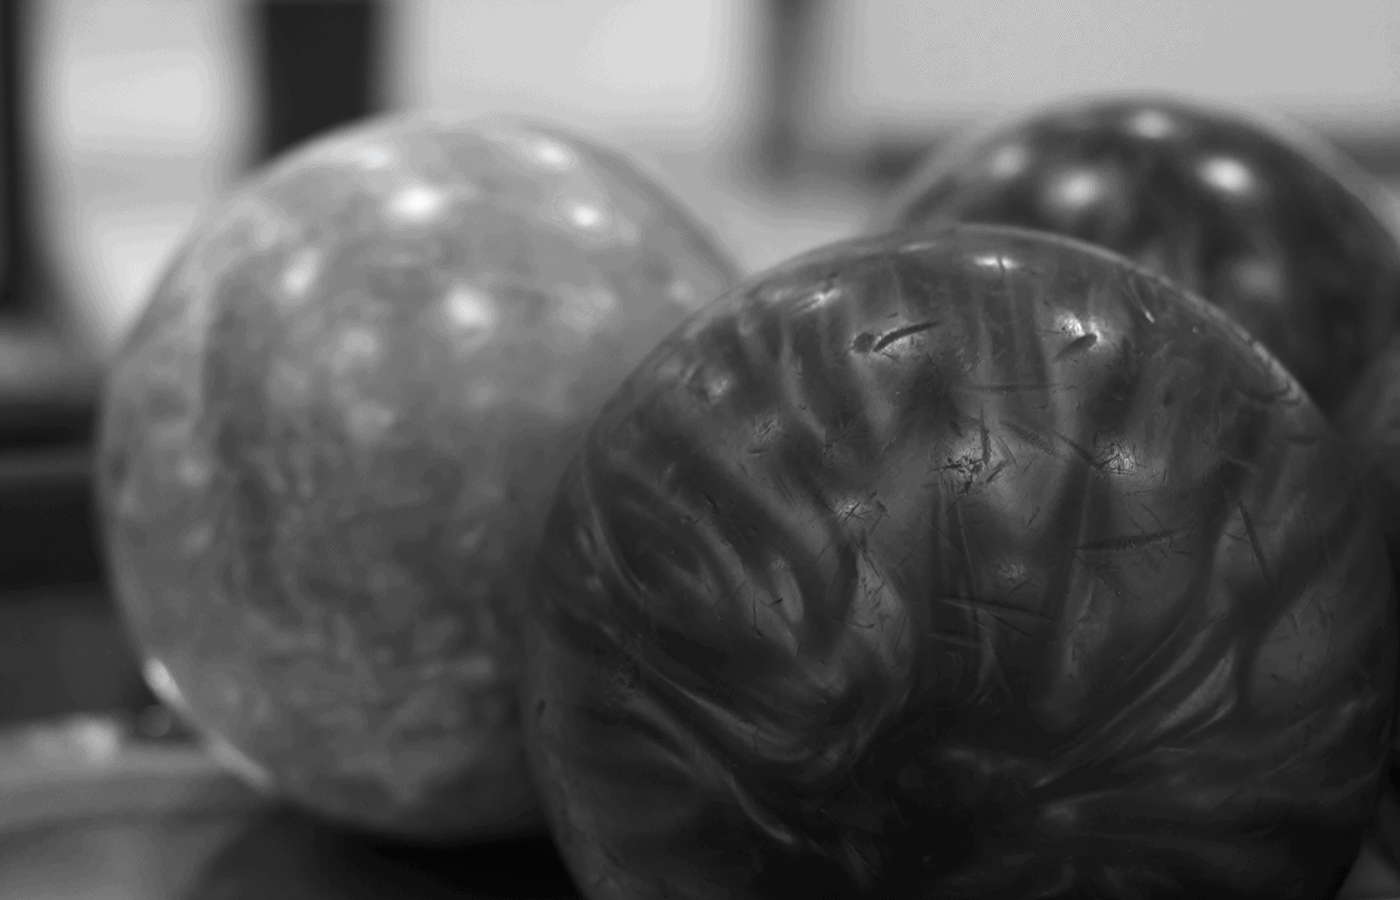 can you use sandpaper on a bowling ball